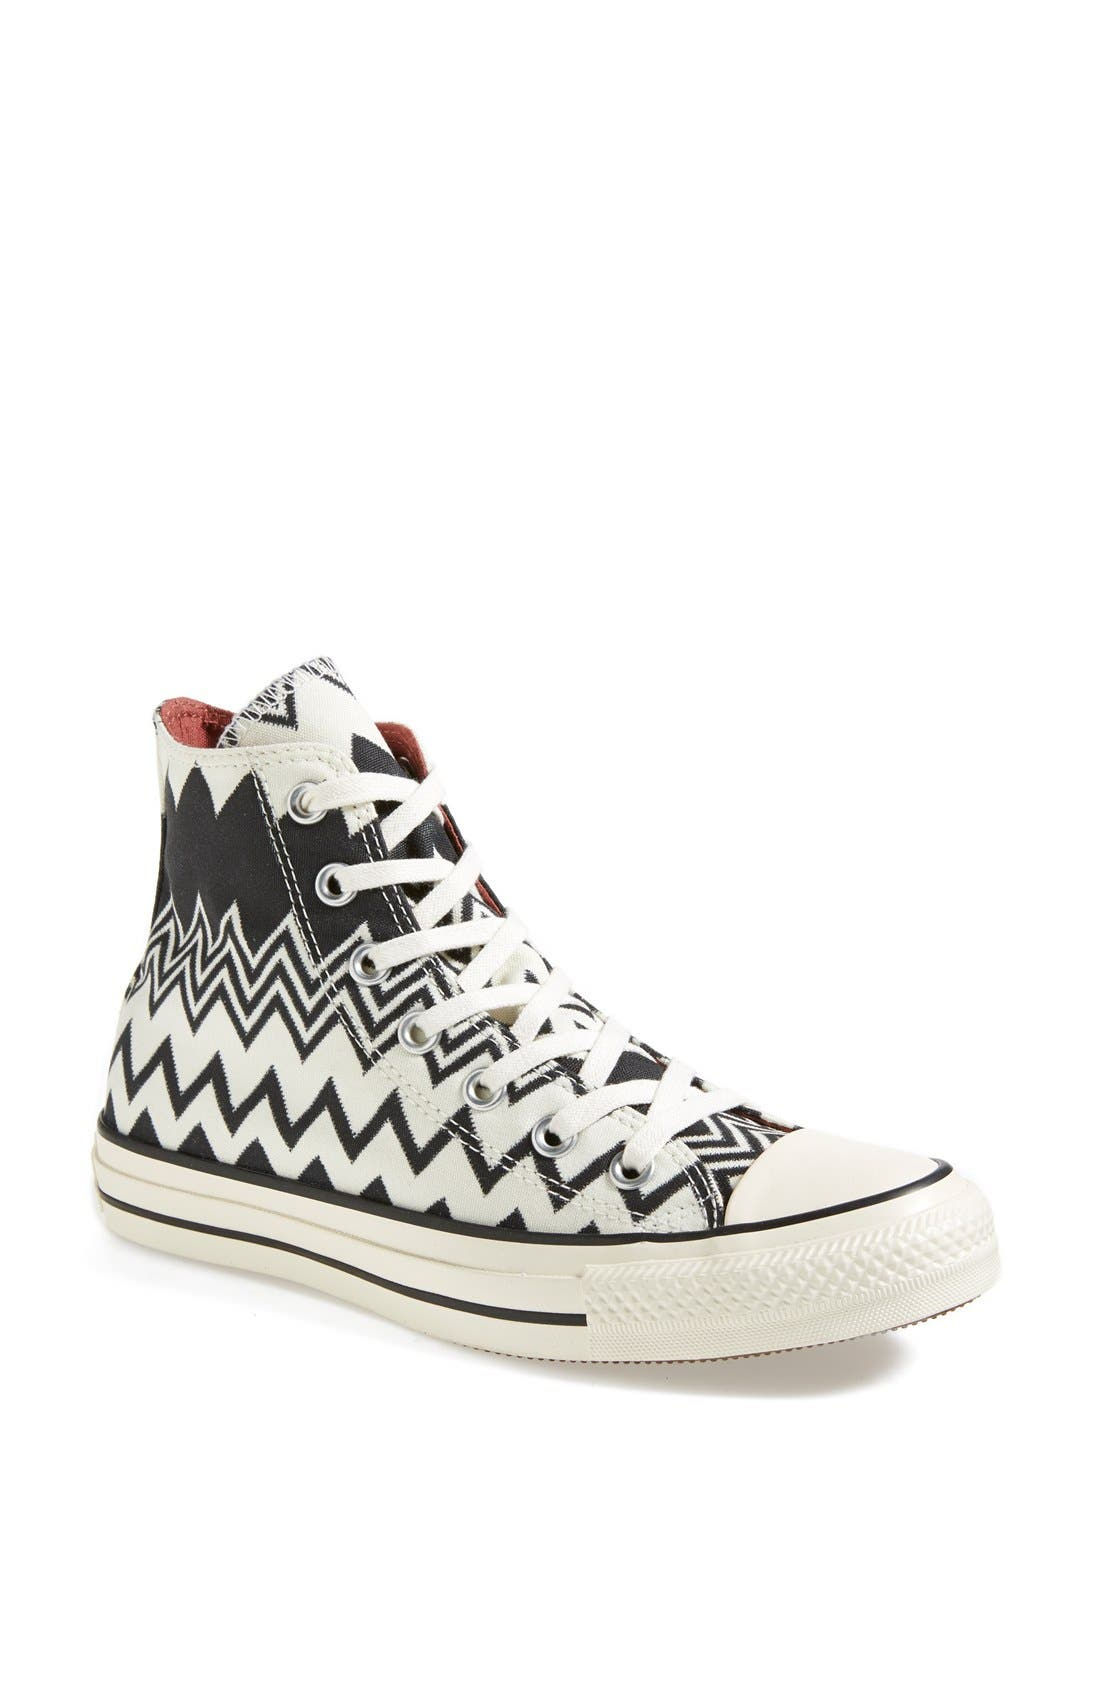 x Missoni Chuck Taylor<sup>®</sup> All Star<sup>®</sup> High Top Sneaker,                         Main,                         color, 001